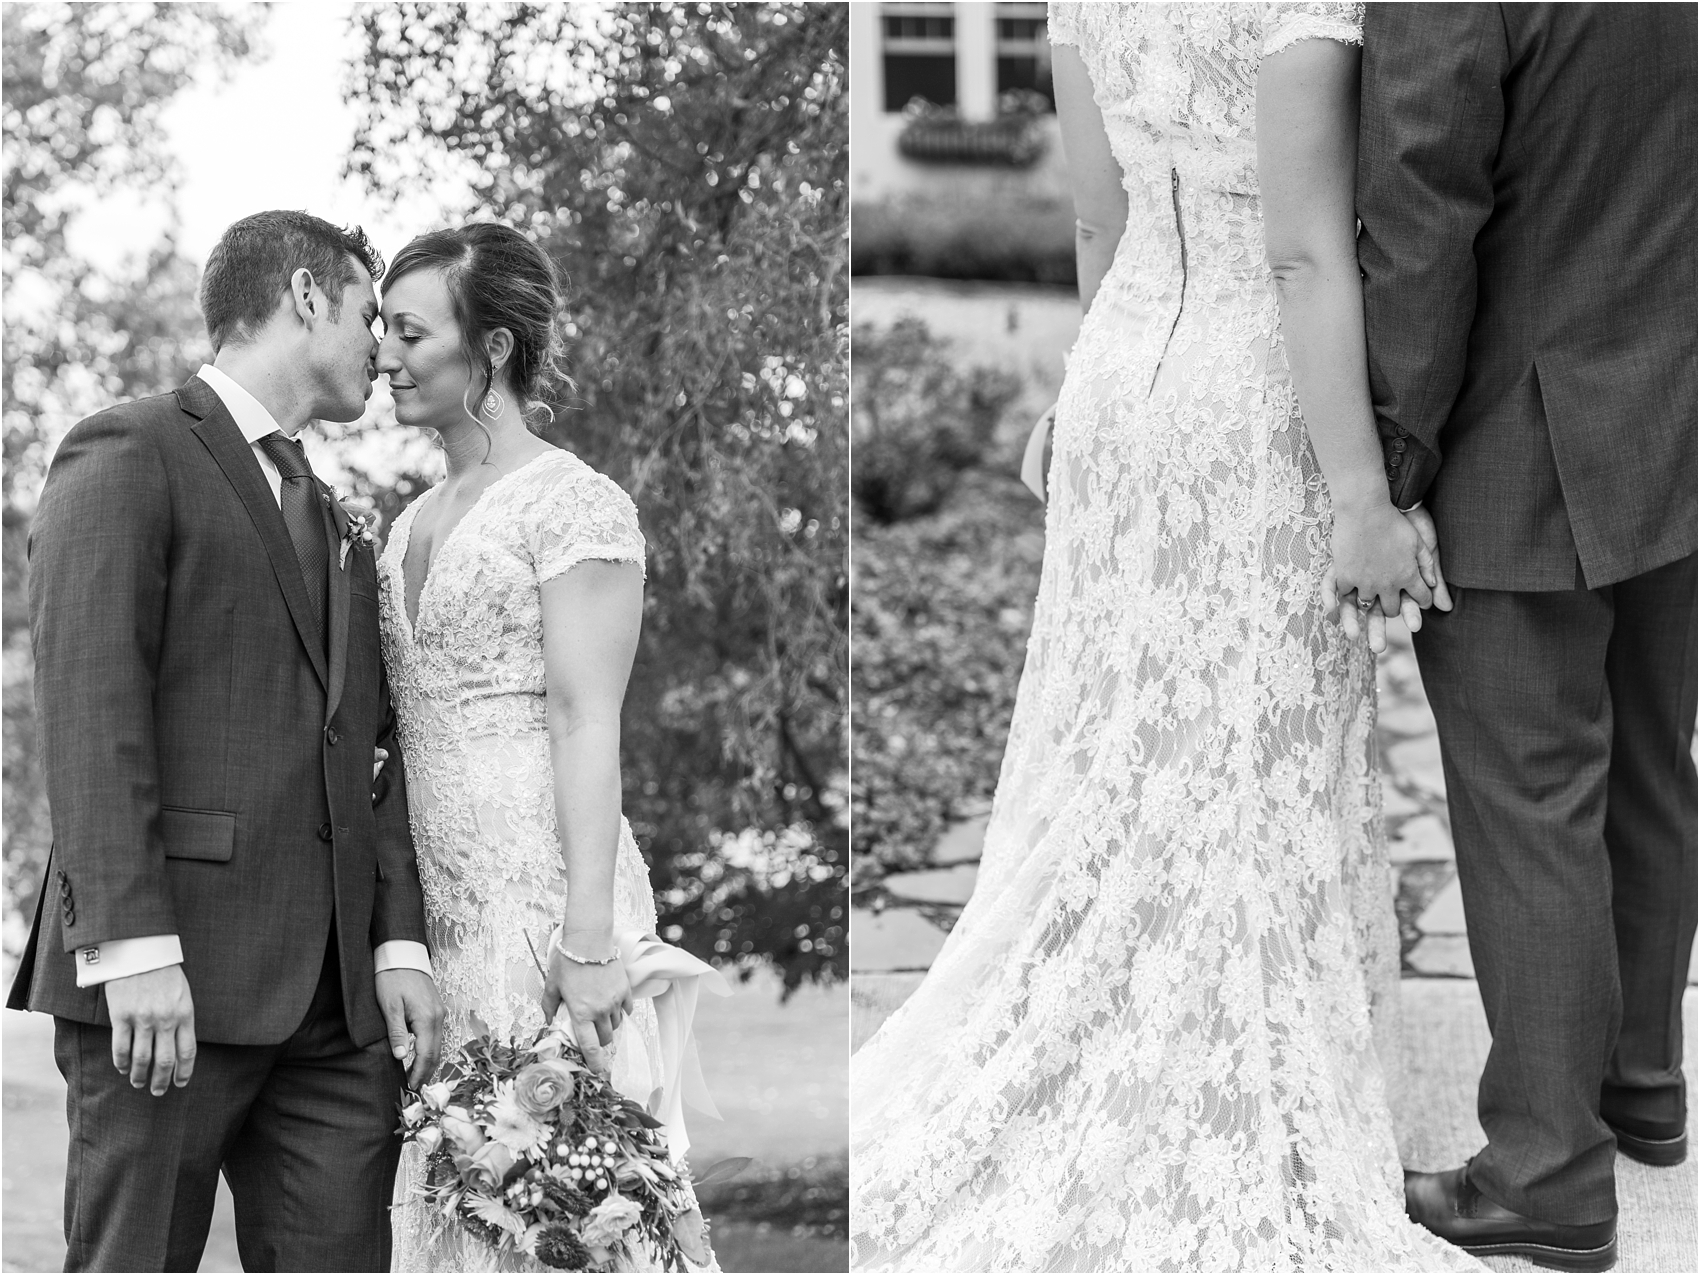 romantic-intimate-backyard-wedding-photos-at-private-estate-in-ann-arbor-mi-by-courtney-carolyn-photography_0049.jpg